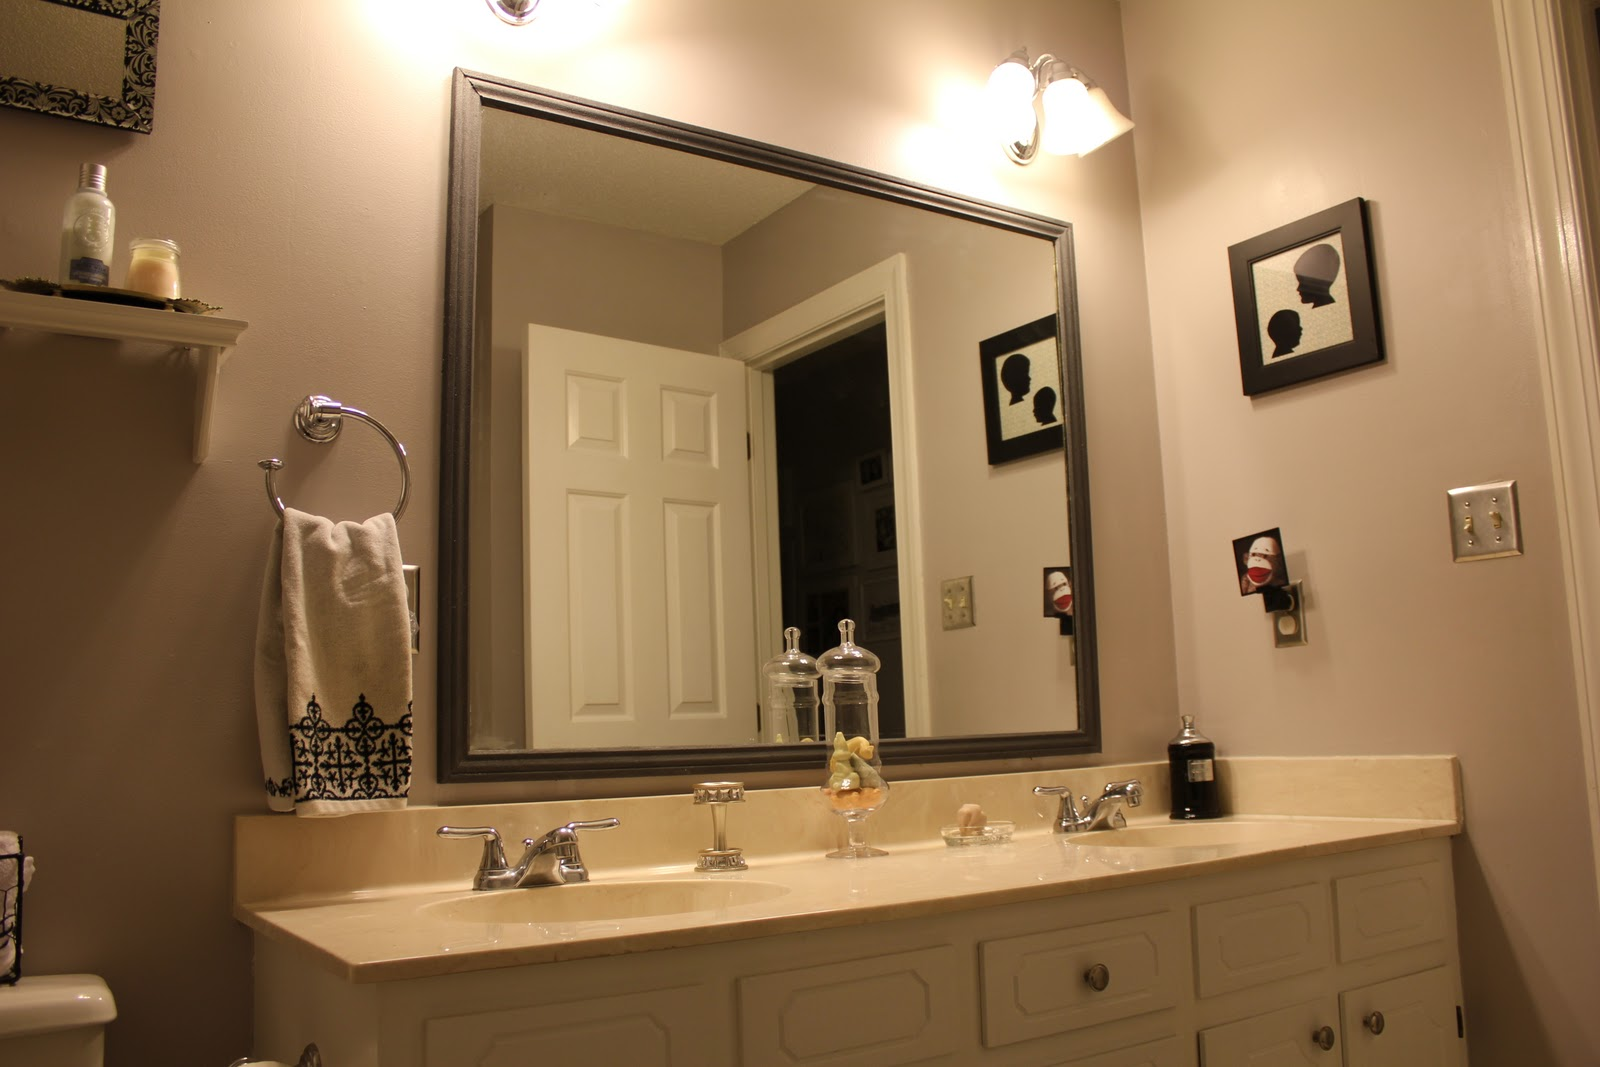 Brown Framed Bathroom Mirrors bathroom mirrors framed